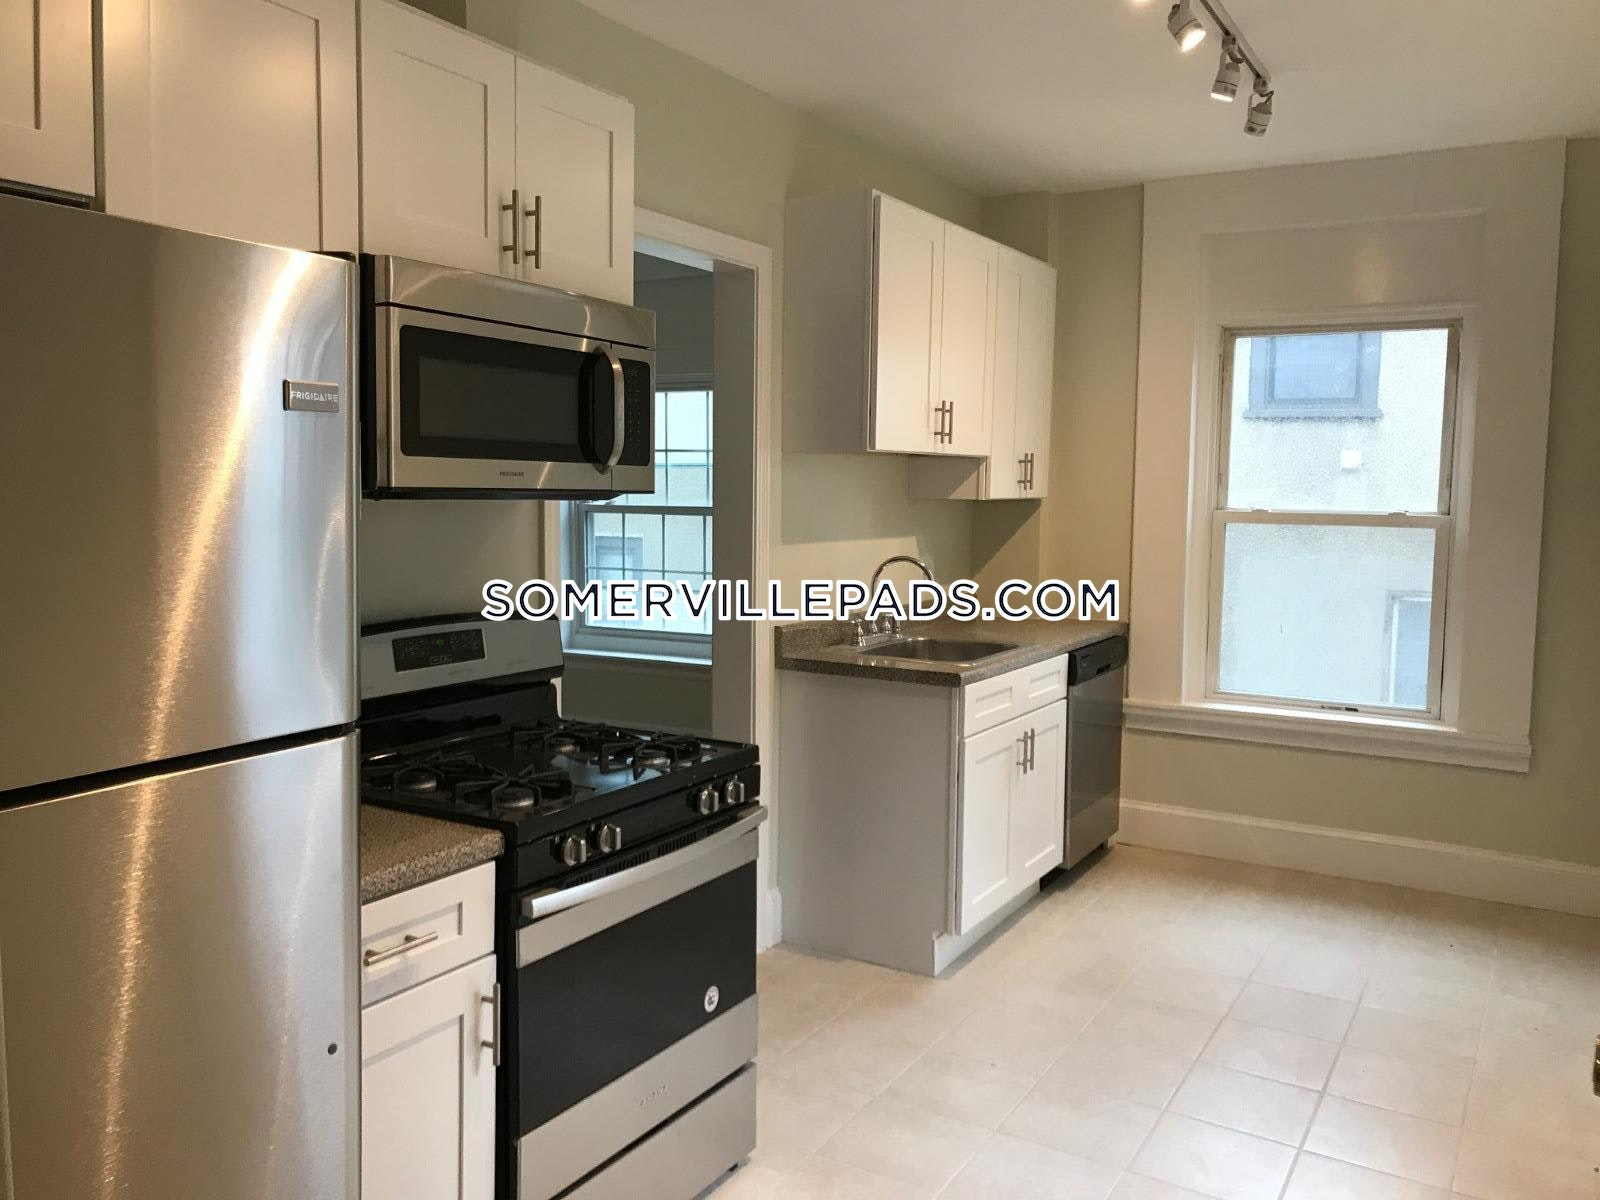 2-beds-1-bath-somerville-porter-square-2675-457648